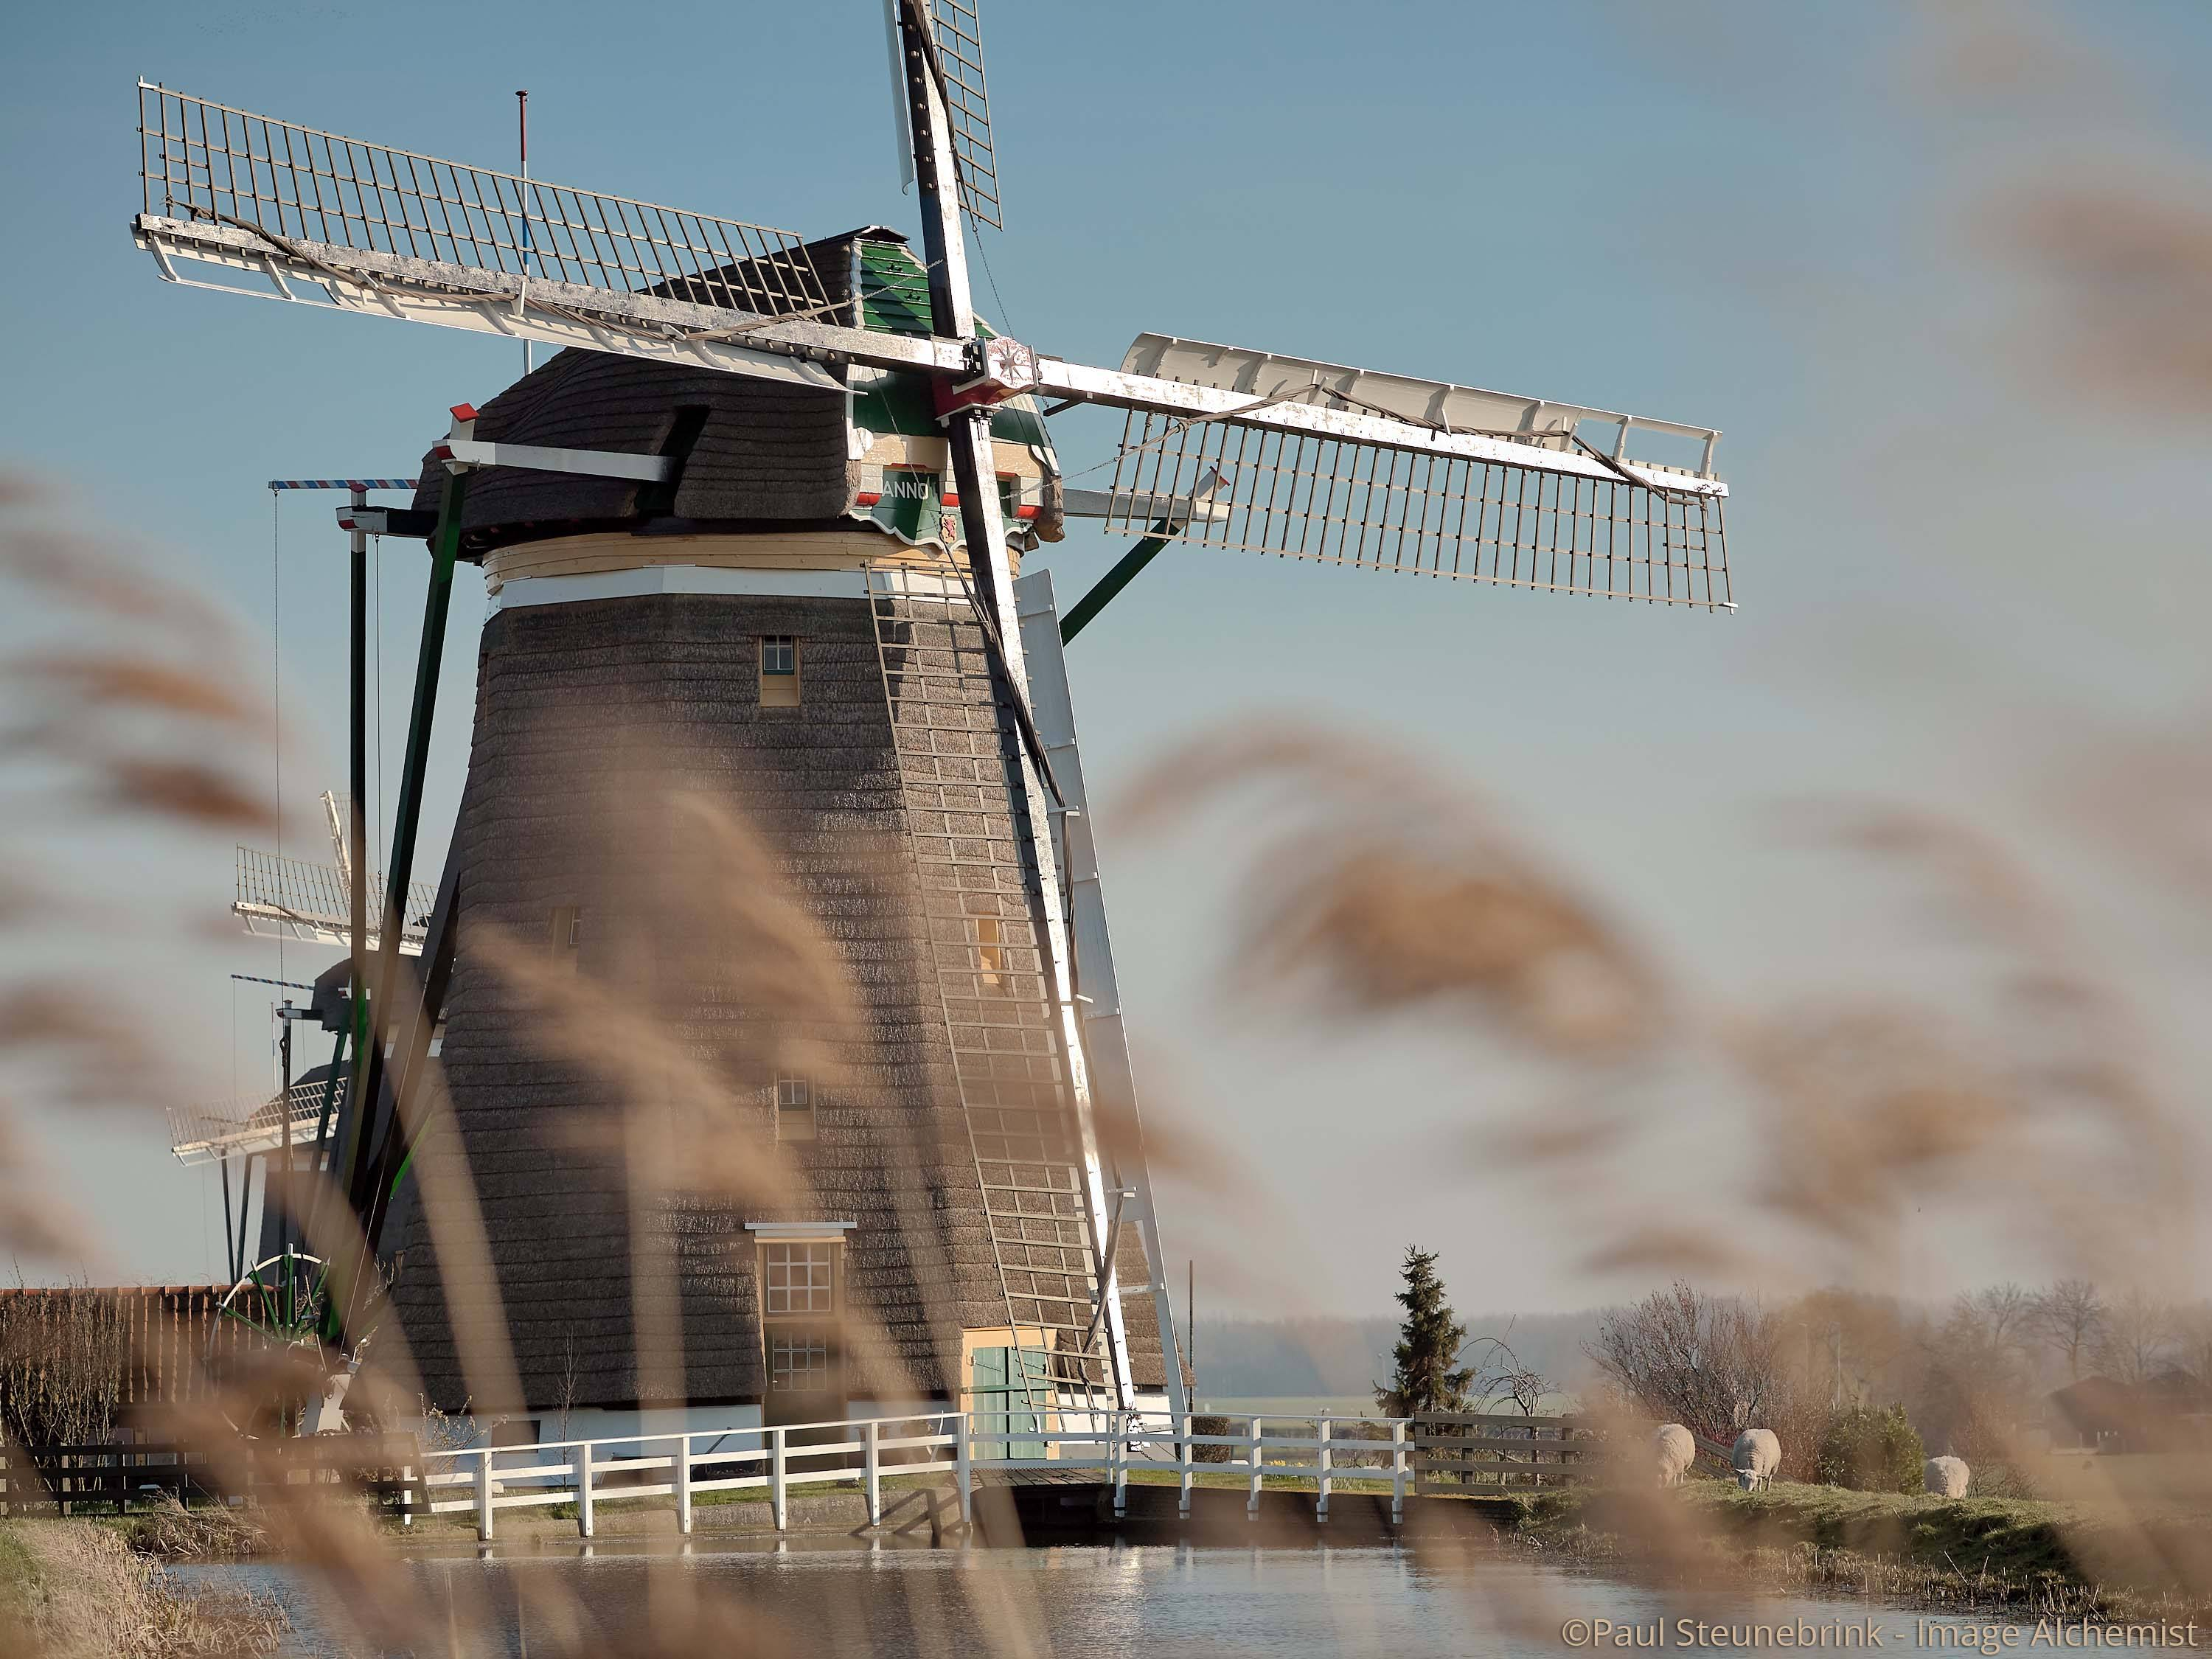 capture one workspace, windmill from stompwijk, the netherlands